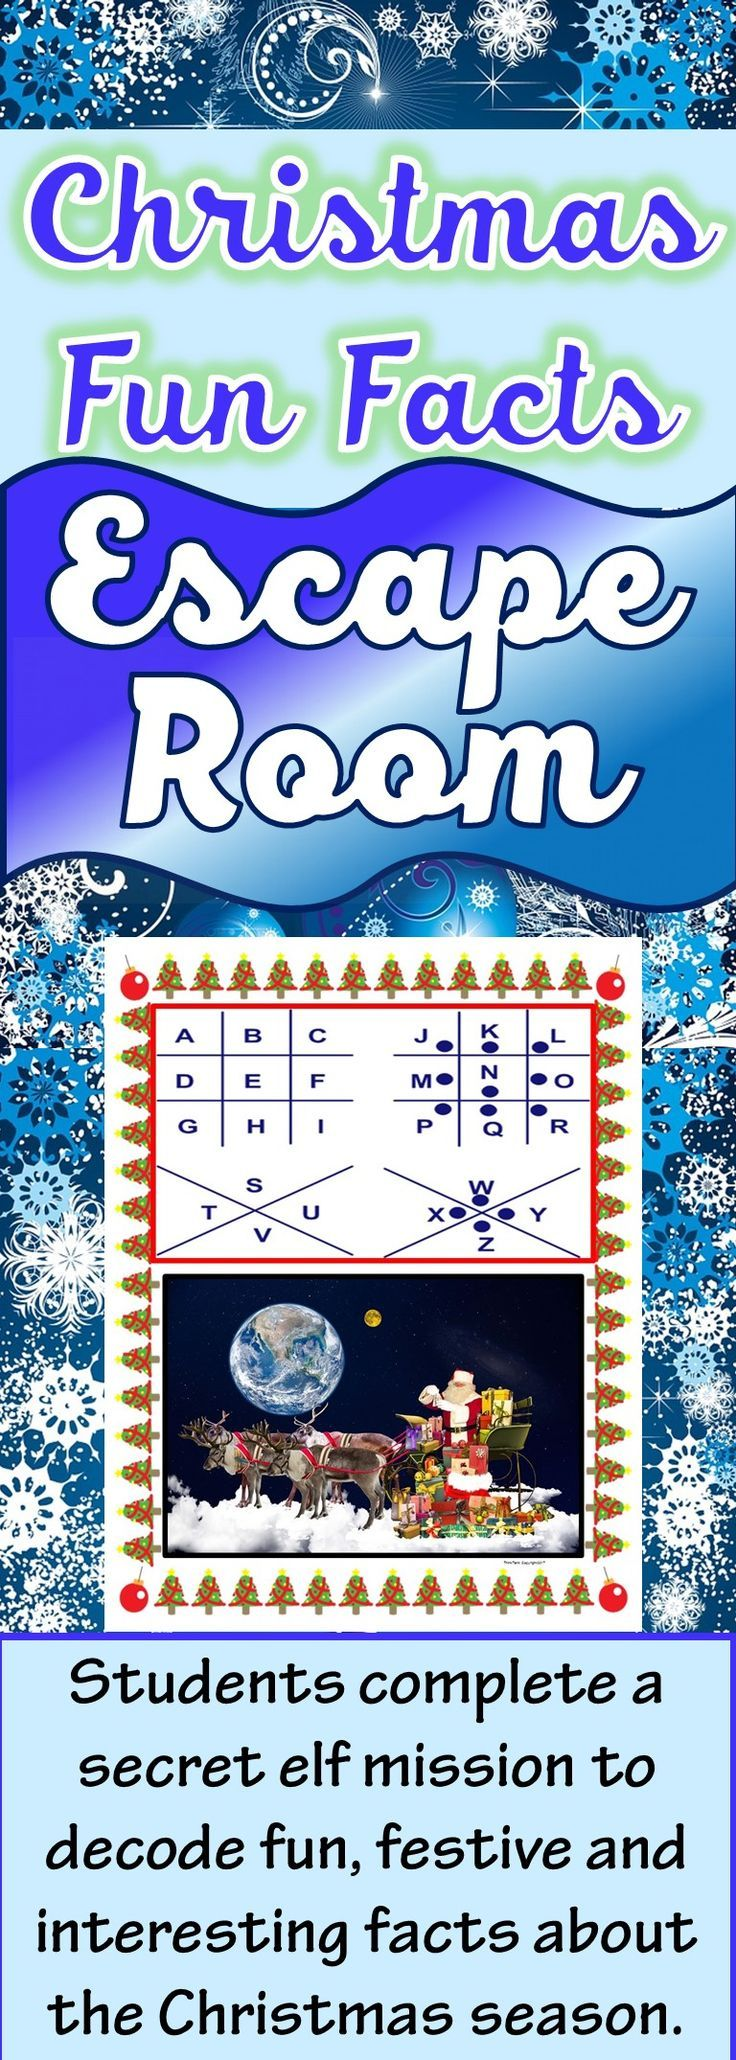 The Christmas Fun Facts Escape Room will take students on a secret mission around the classroom! This escape room has students decode fun and interesting facts about the Christmas holiday season. This is the perfect resource for December fun! Facts include: The tallest Christmas tree, the number of LEGO products sold per second, the number of Christmas cards sent, the largest snowman, Christmas song facts etc.